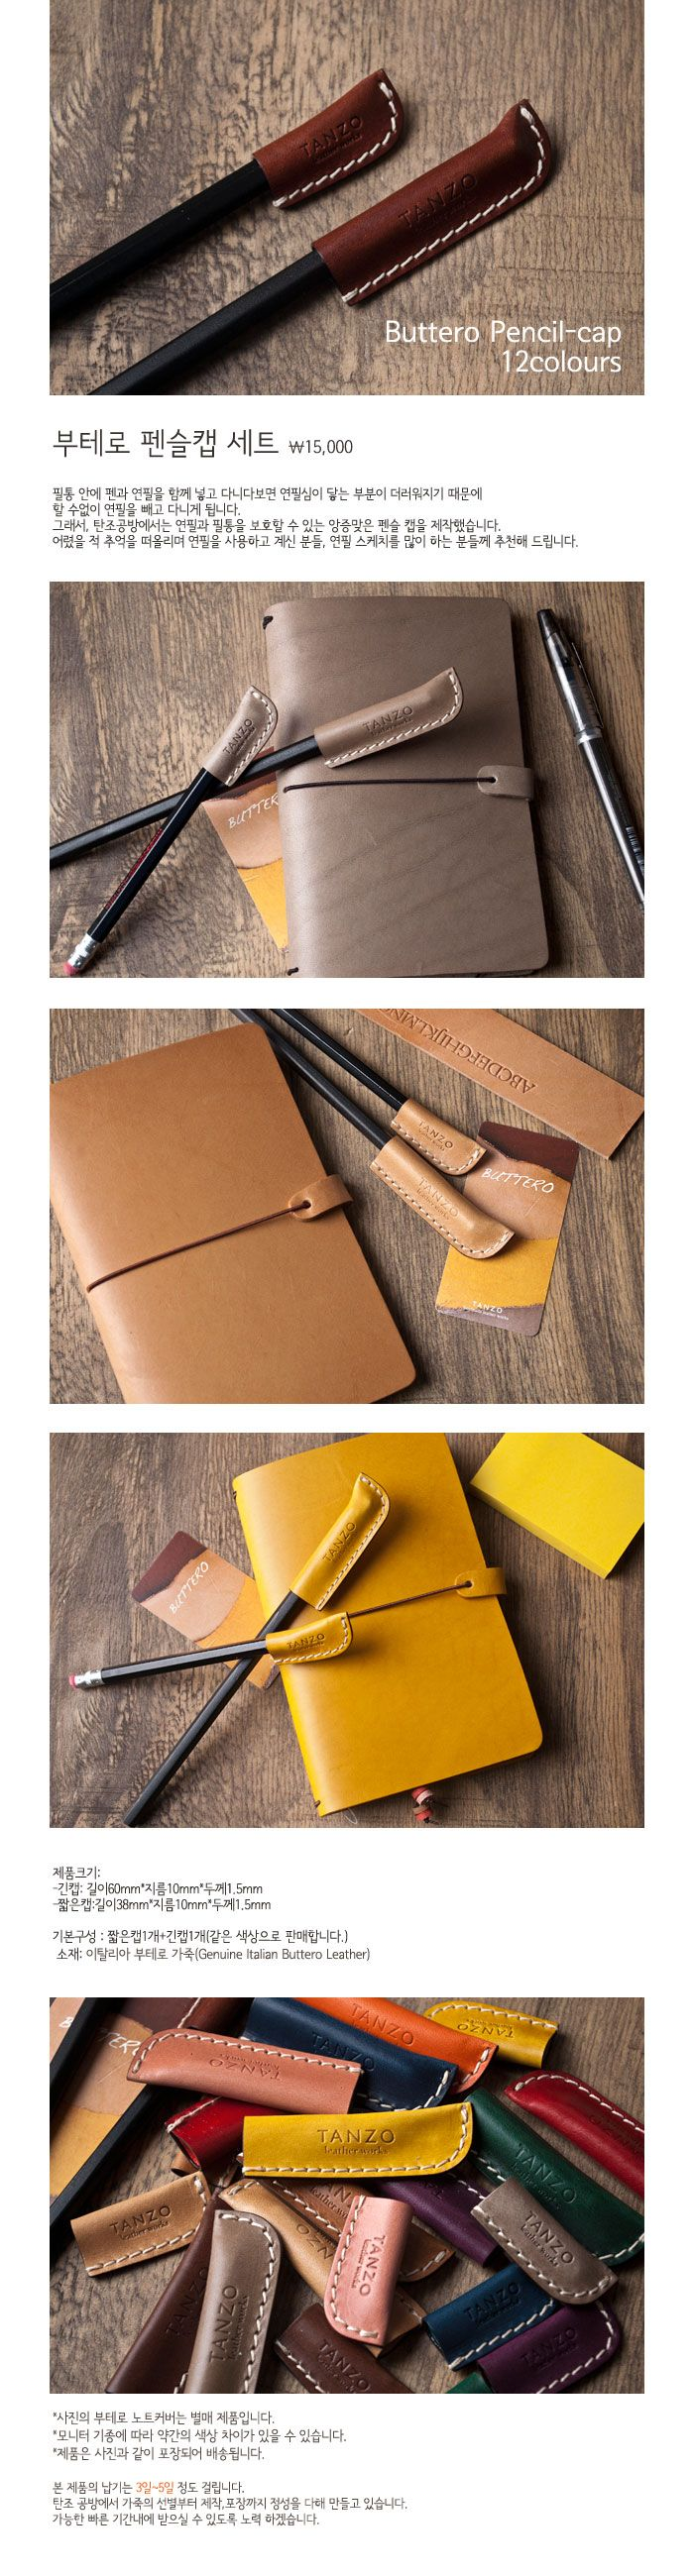 Diy Leather Pencil Case, Inexpensive Pencil Pouches, Diy Custom Pencils, Diy Pencil Bag, Diy Pencil Box, Washi Tape Pencils, #Pencil #Costom #Case